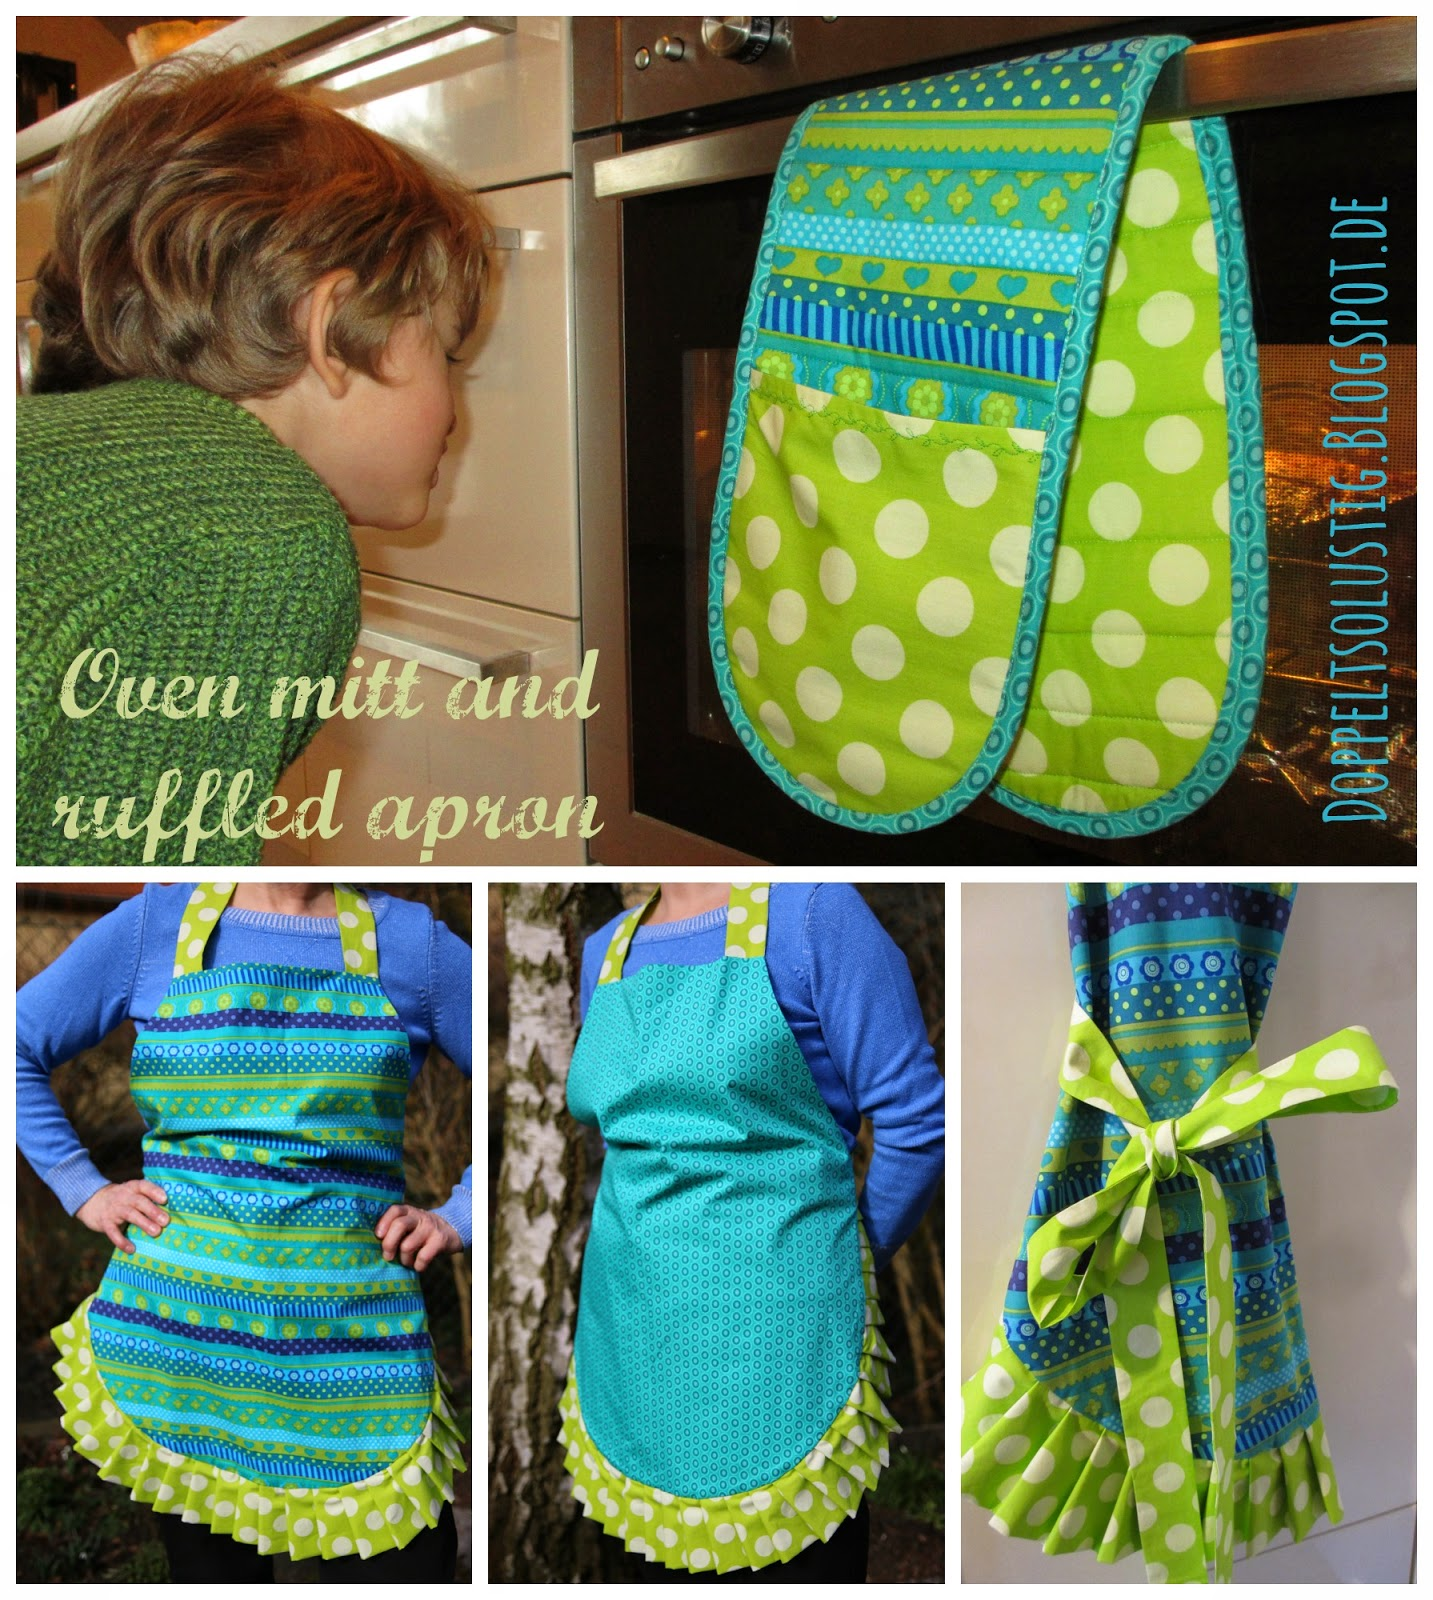 Oven mitt and ruffled apron | Twice the Fun